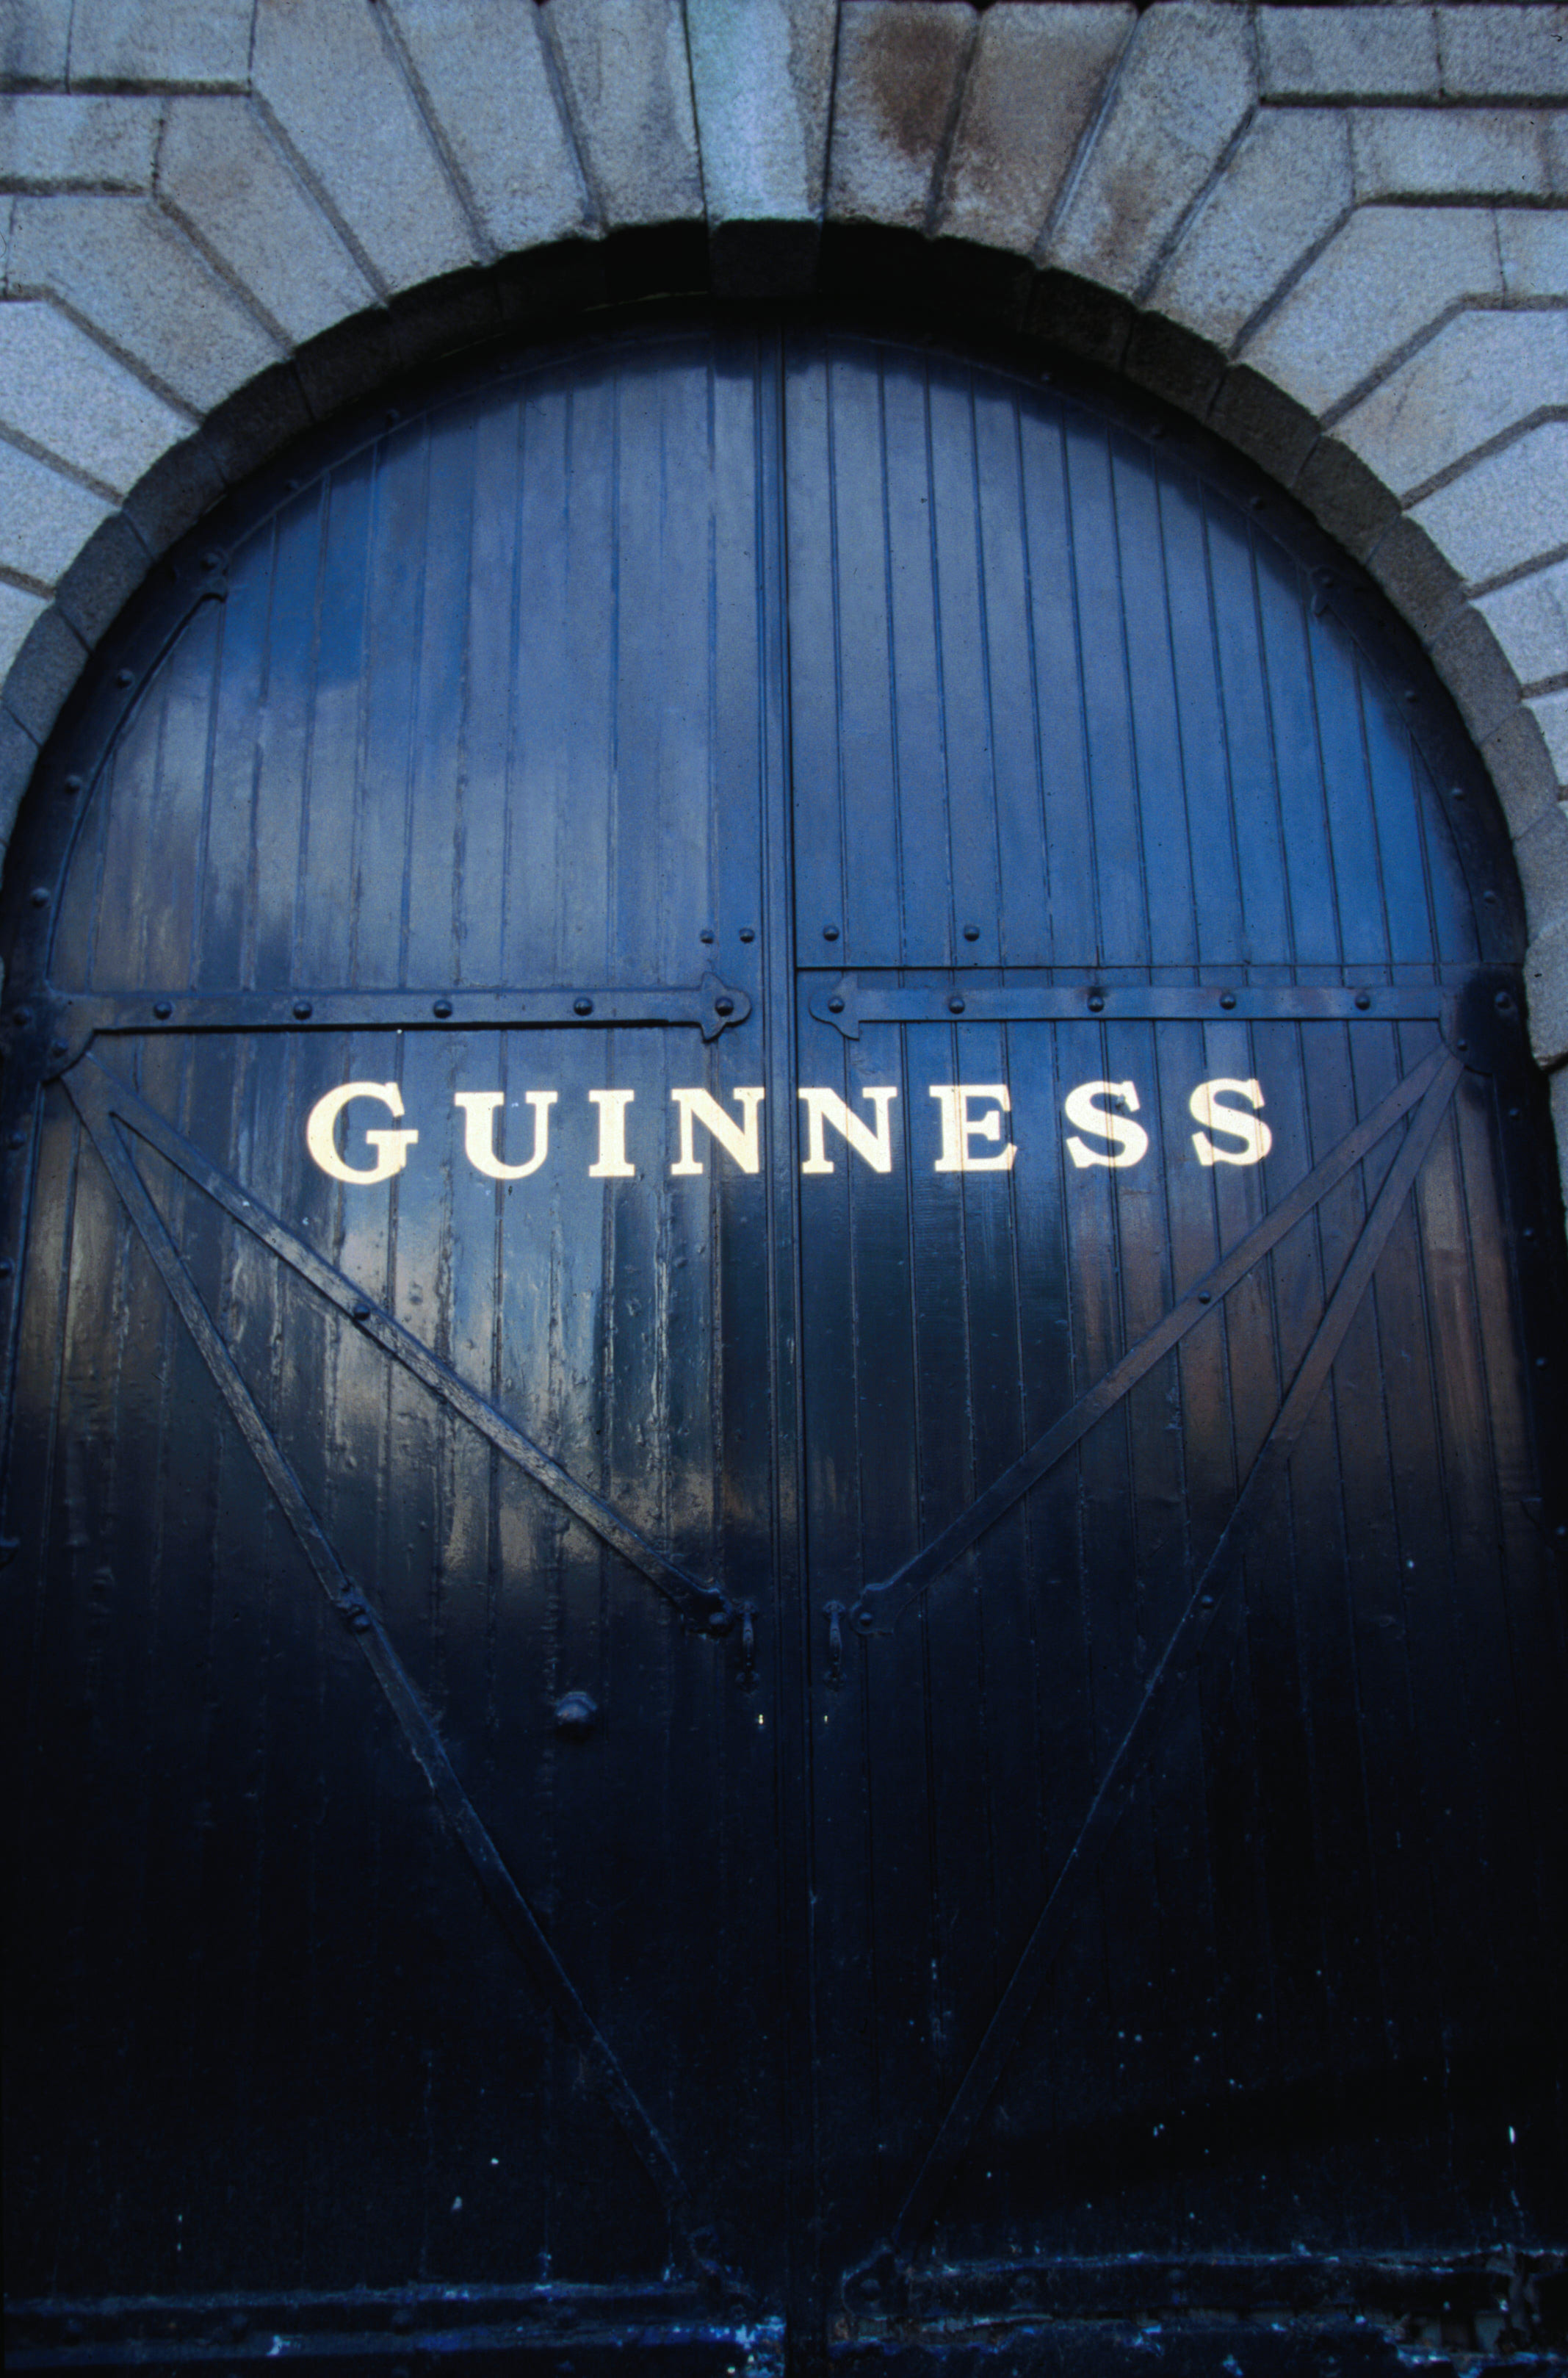 Guinness Draught has been available since 1959.